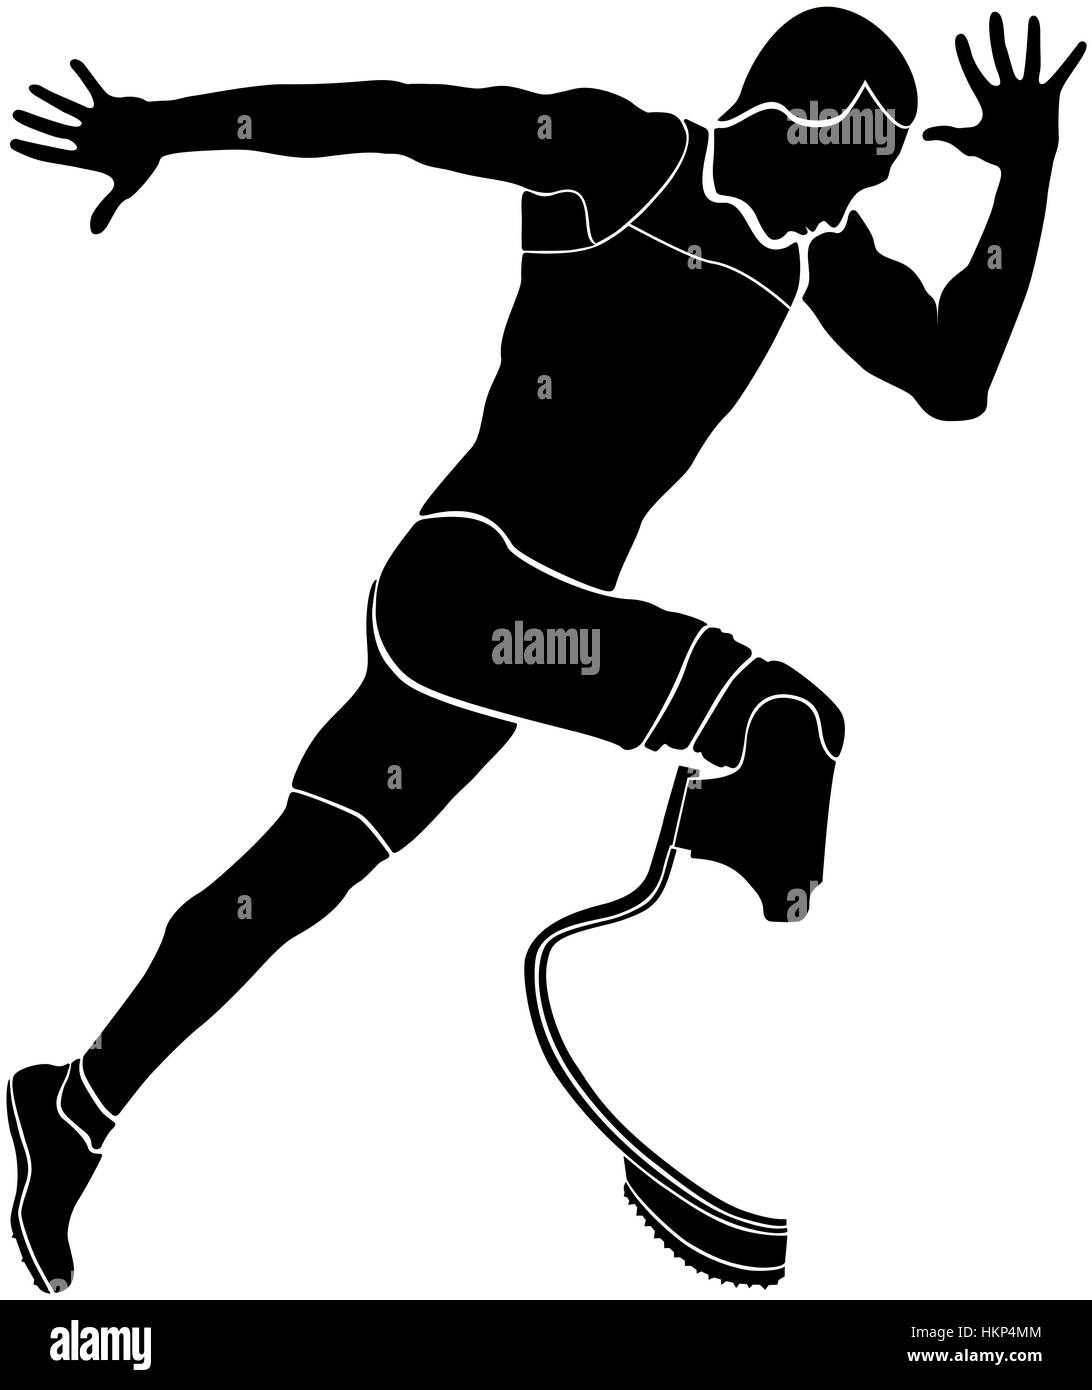 explosive runner athlete disabled amputee black silhouette Stock Photo